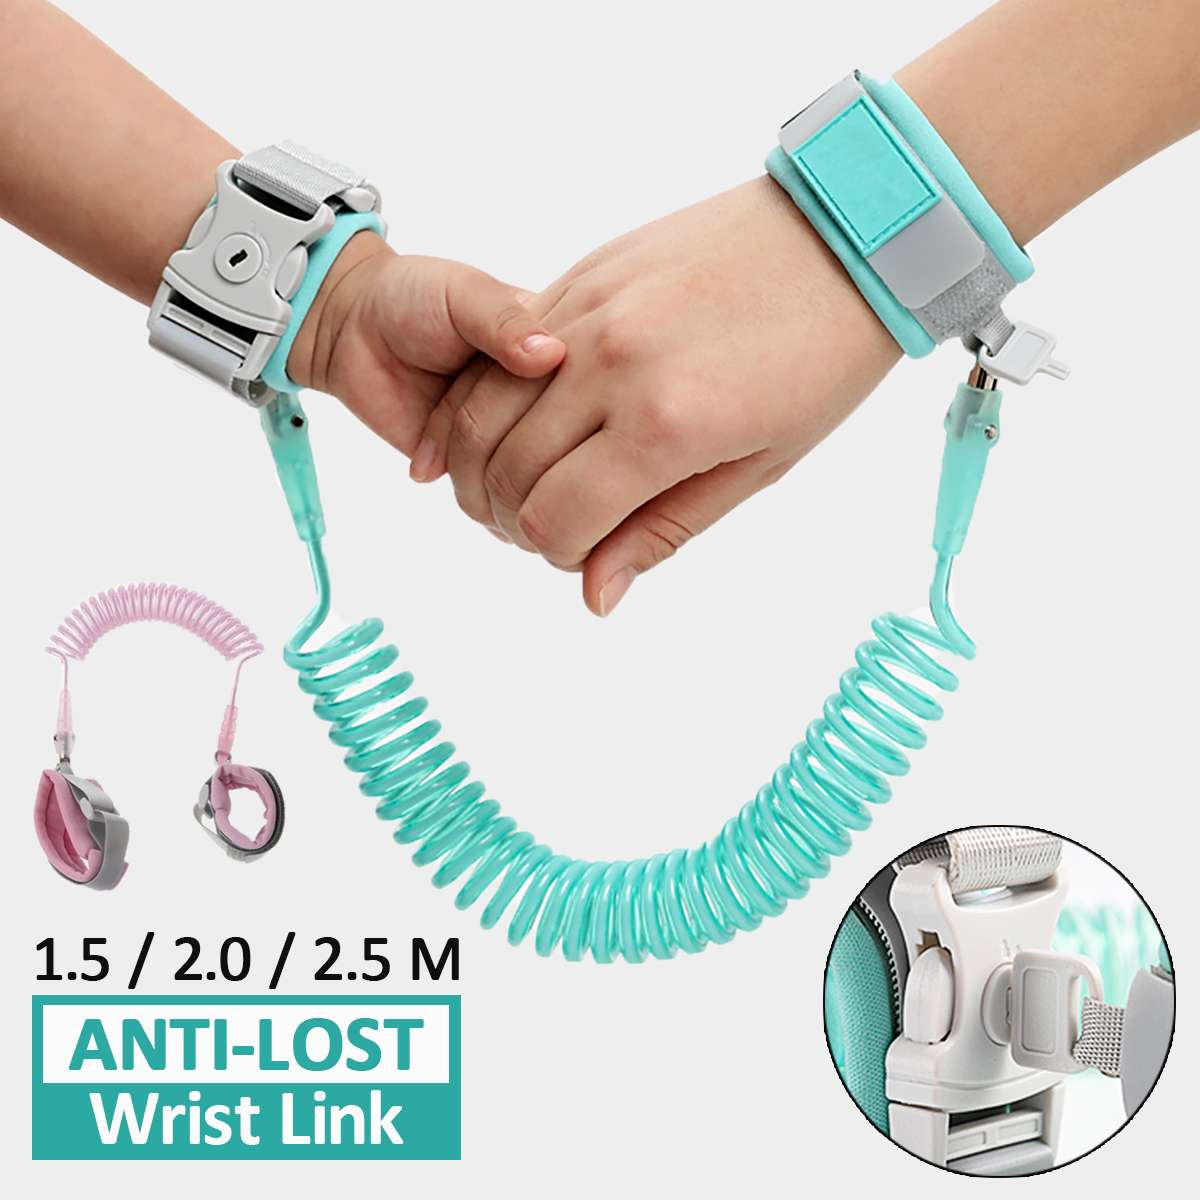 Anti Lost Wrist Link Toddler Leash Safety Harness for Baby Strap Rope Outdoor Walking Hand Belt Band Anti-lost Wristband KidsAnti Lost Wrist Link Toddler Leash Safety Harness for Baby Strap Rope Outdoor Walking Hand Belt Band Anti-lost Wristband Kids